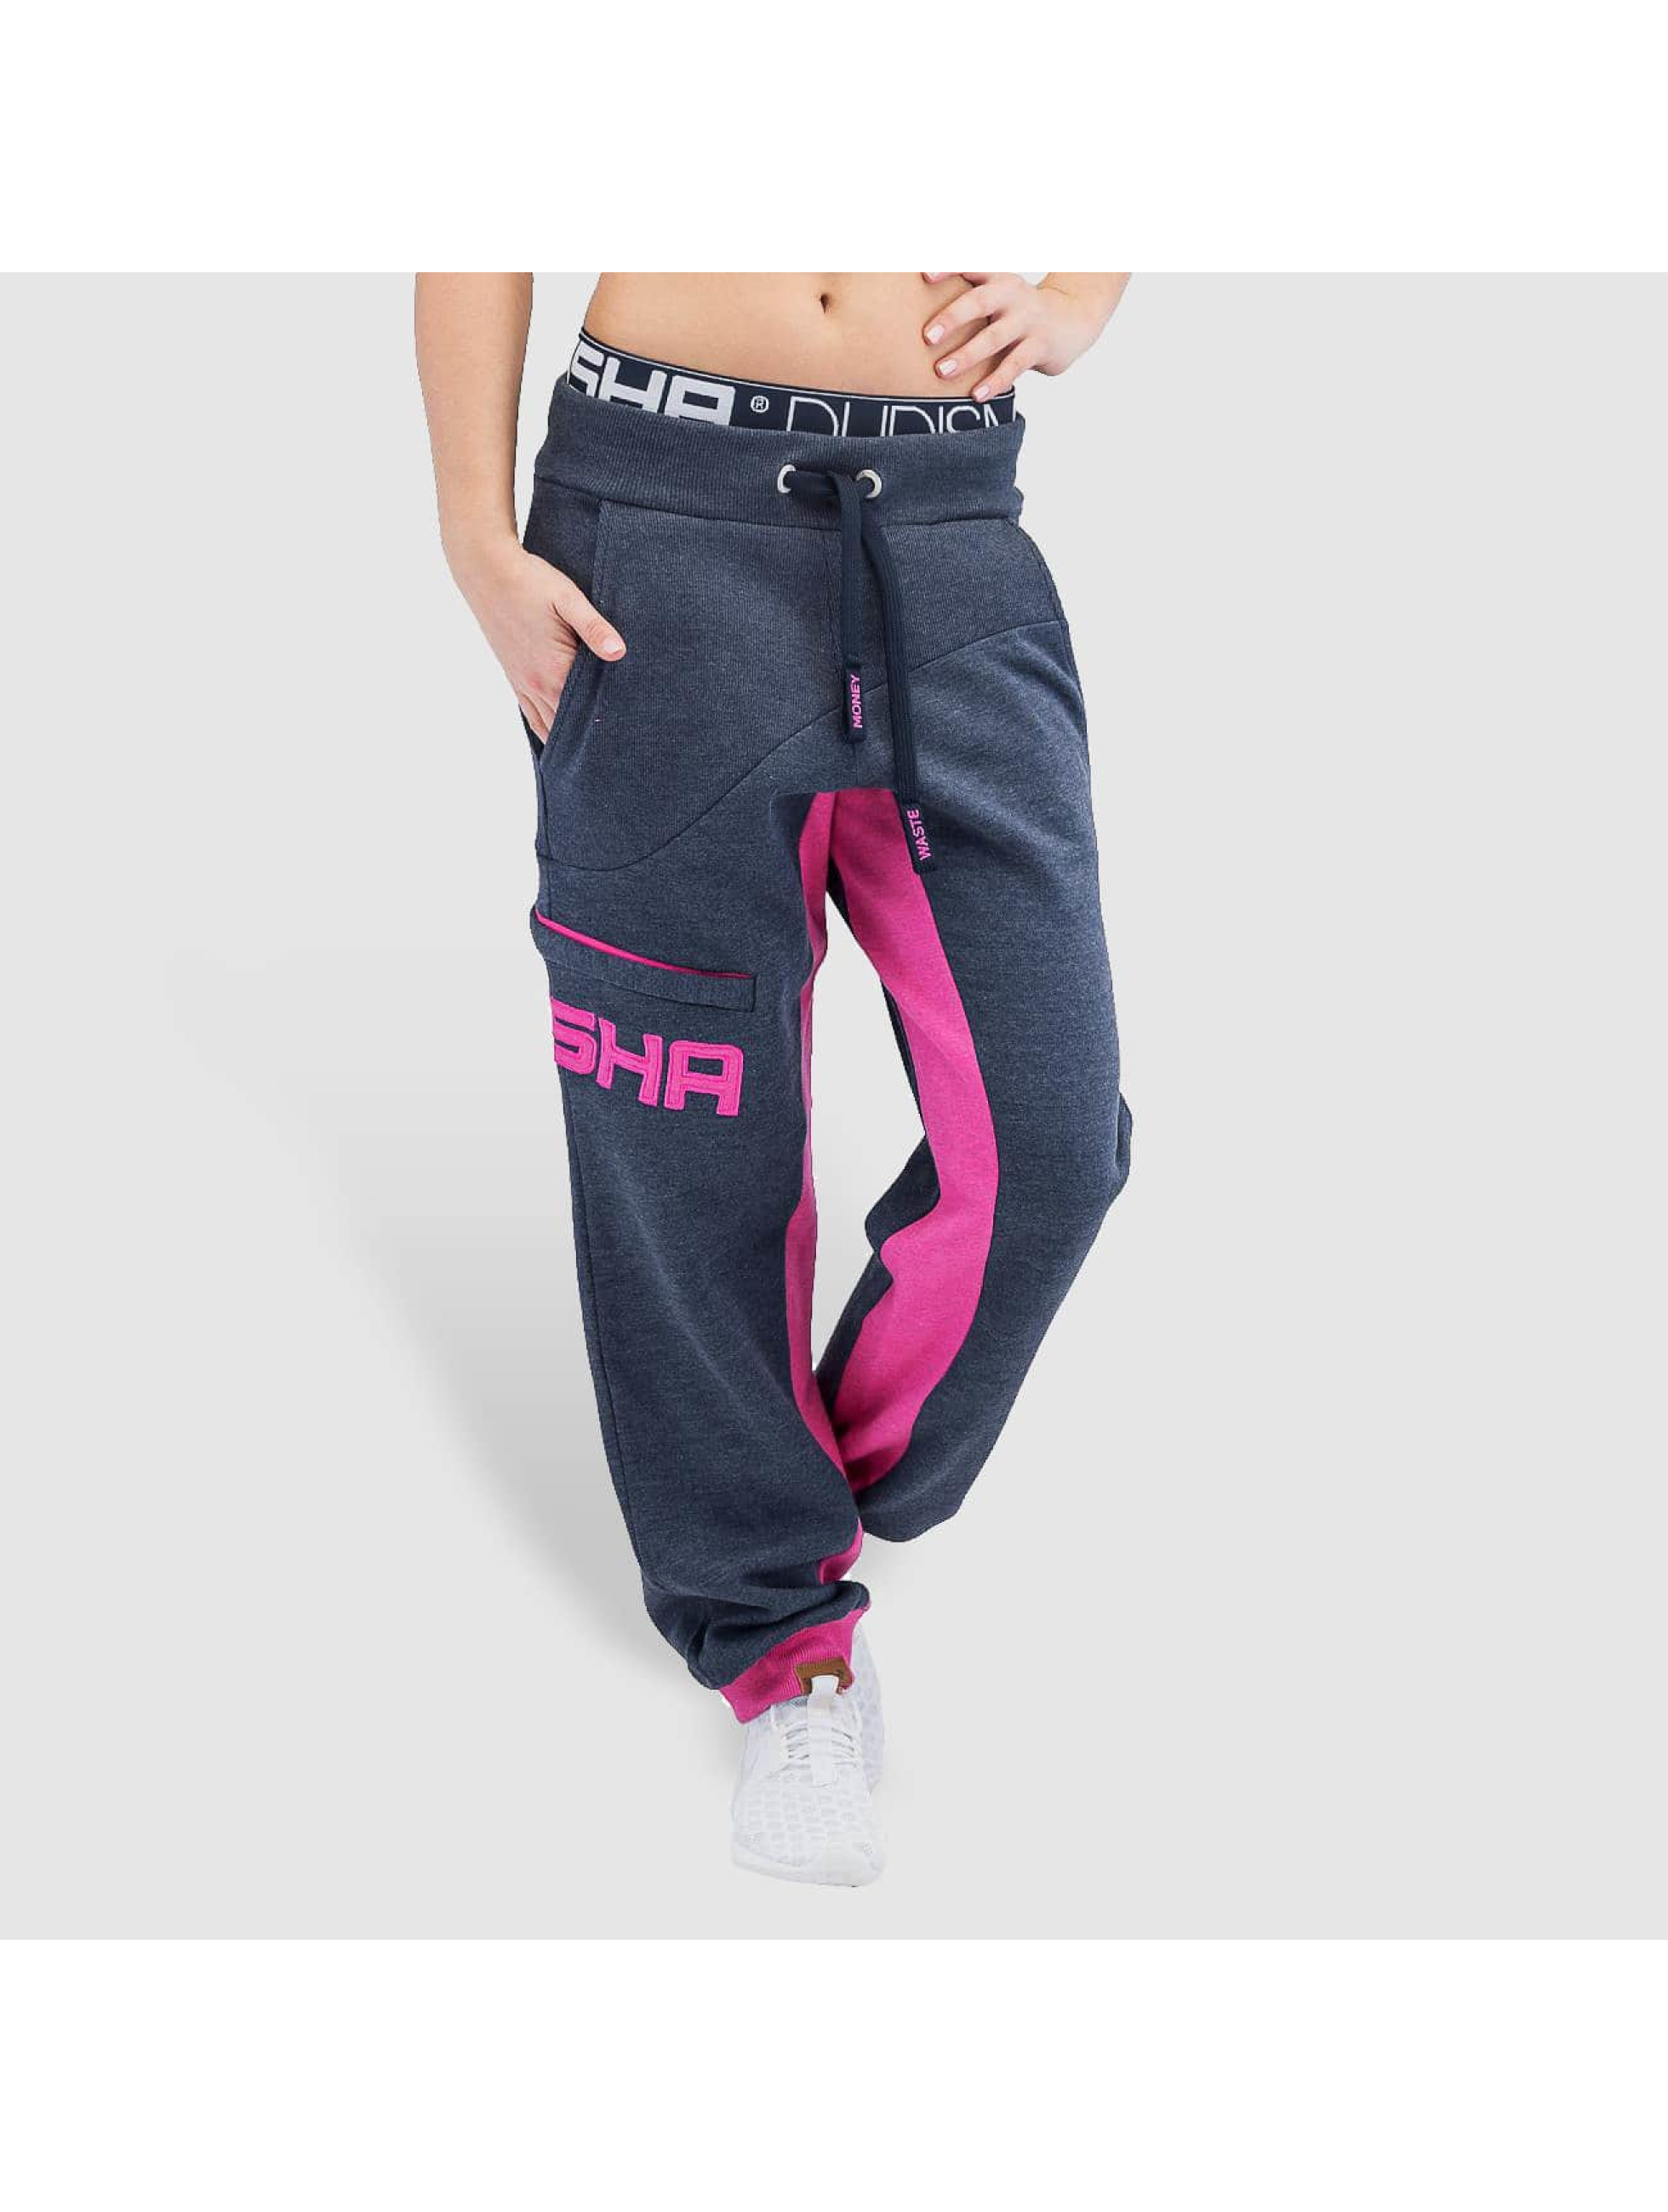 Nike Fleece Kinder Shisha Damen Jogginghose Sundag In Blau 230739